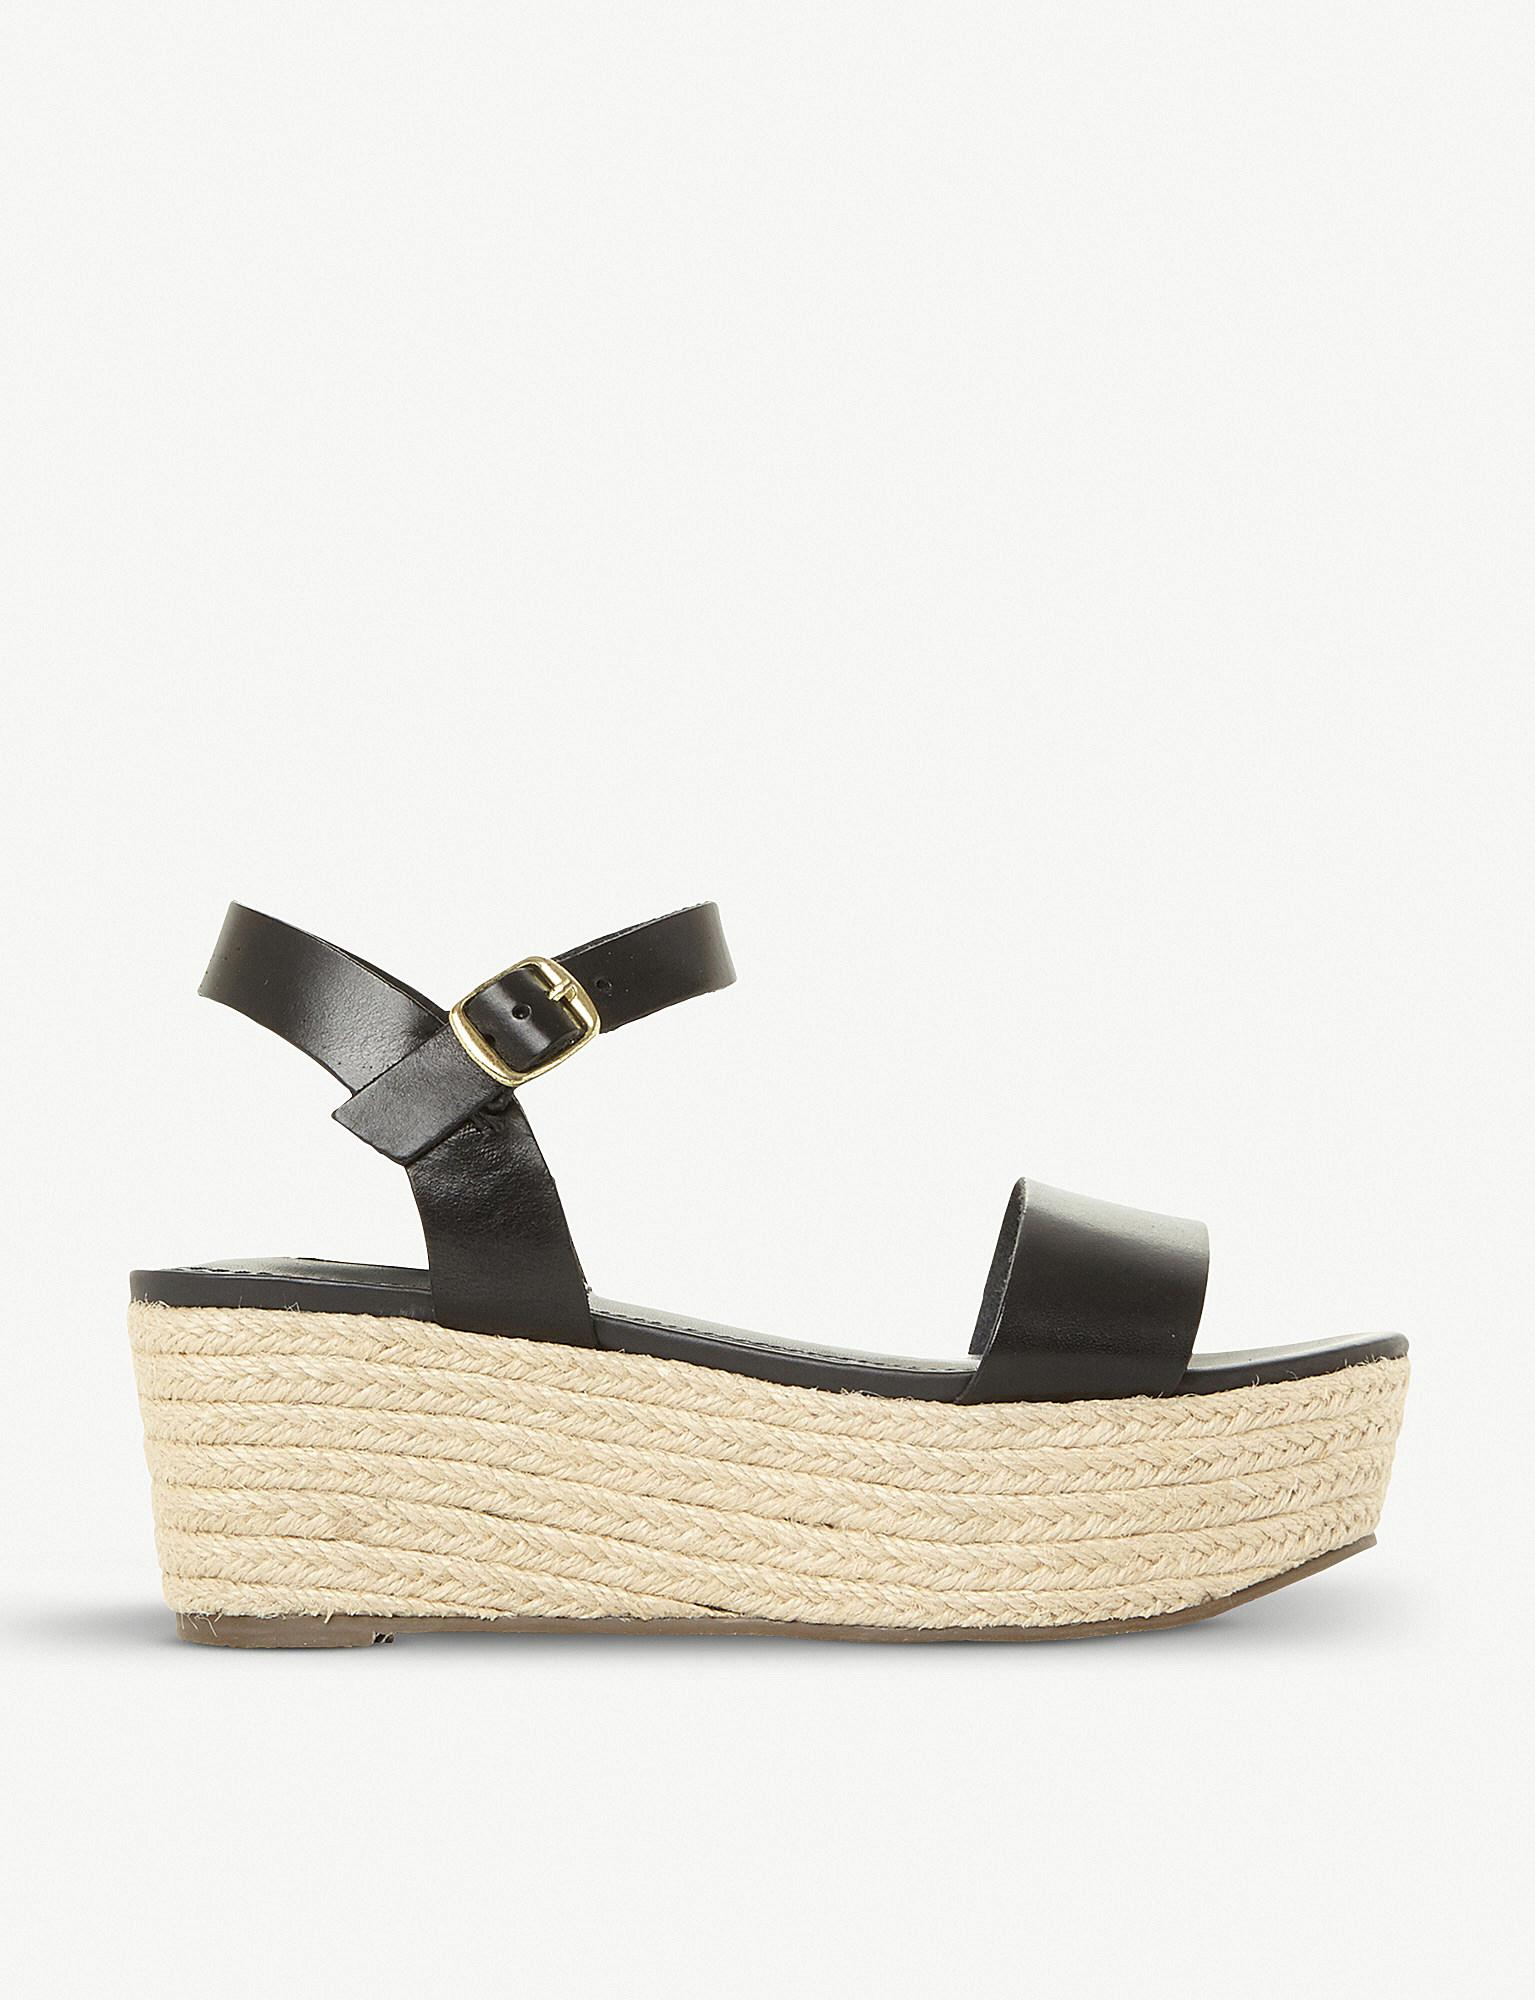 534c46bfffb8 Steve Madden Busy Sm Leather And Jute Platform Sandals in Black - Lyst